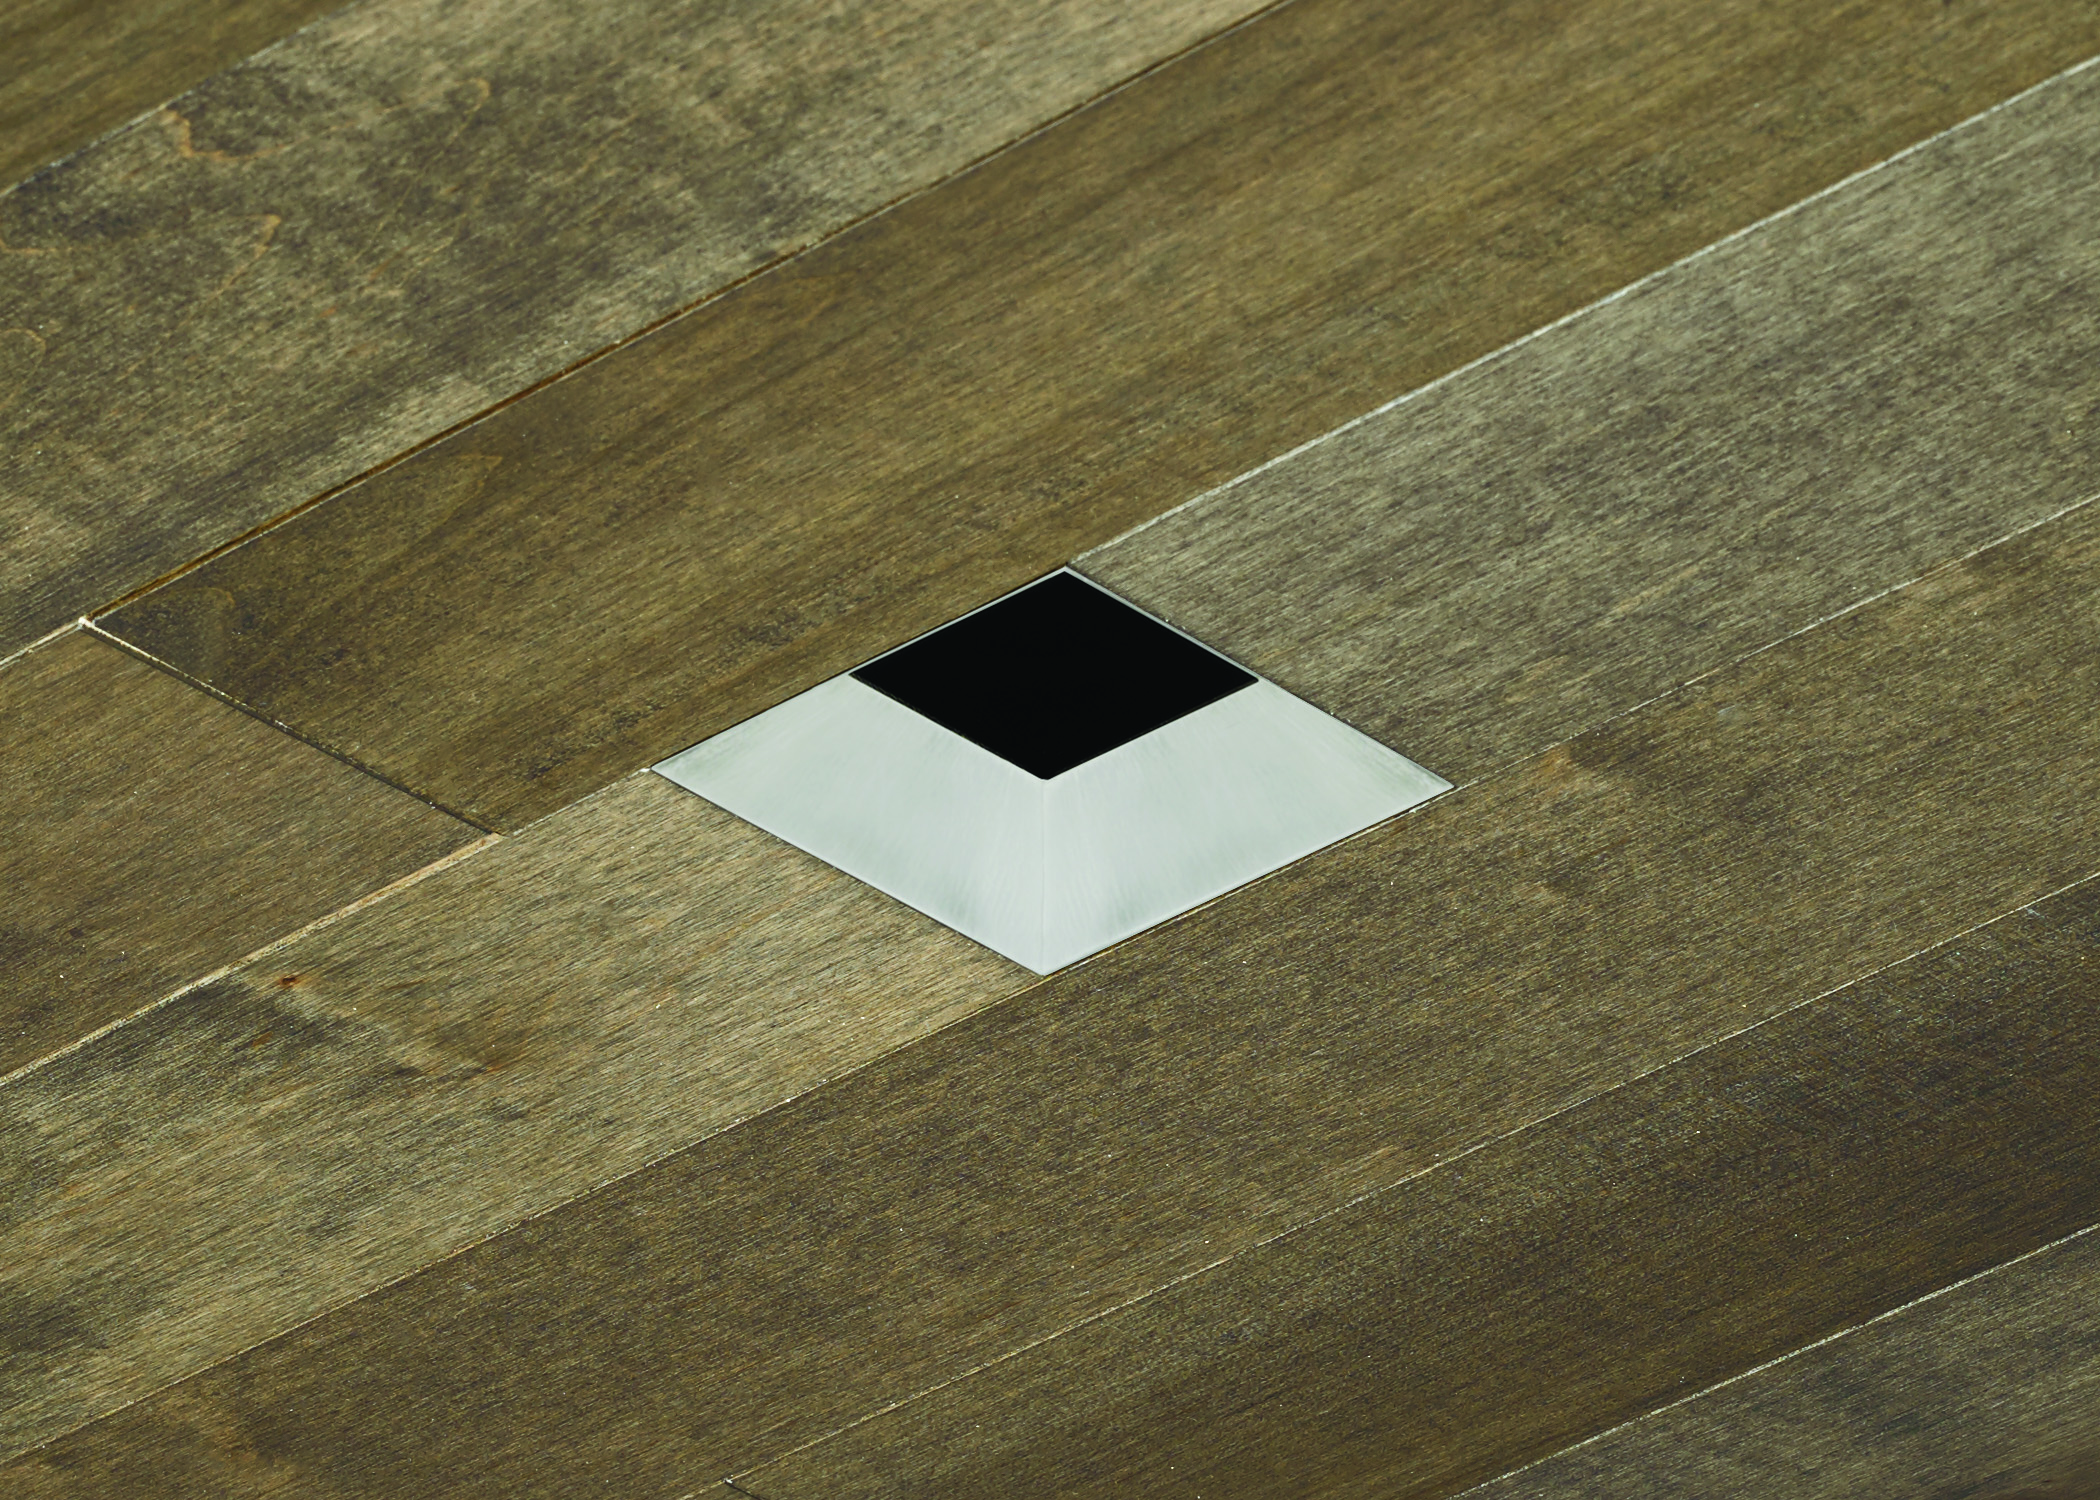 element by tech lighting. tech lighting has introduced element 3\u201d recessed downlights for wood ceiling solutions which will offer truly flangeless installation without unsightly element by